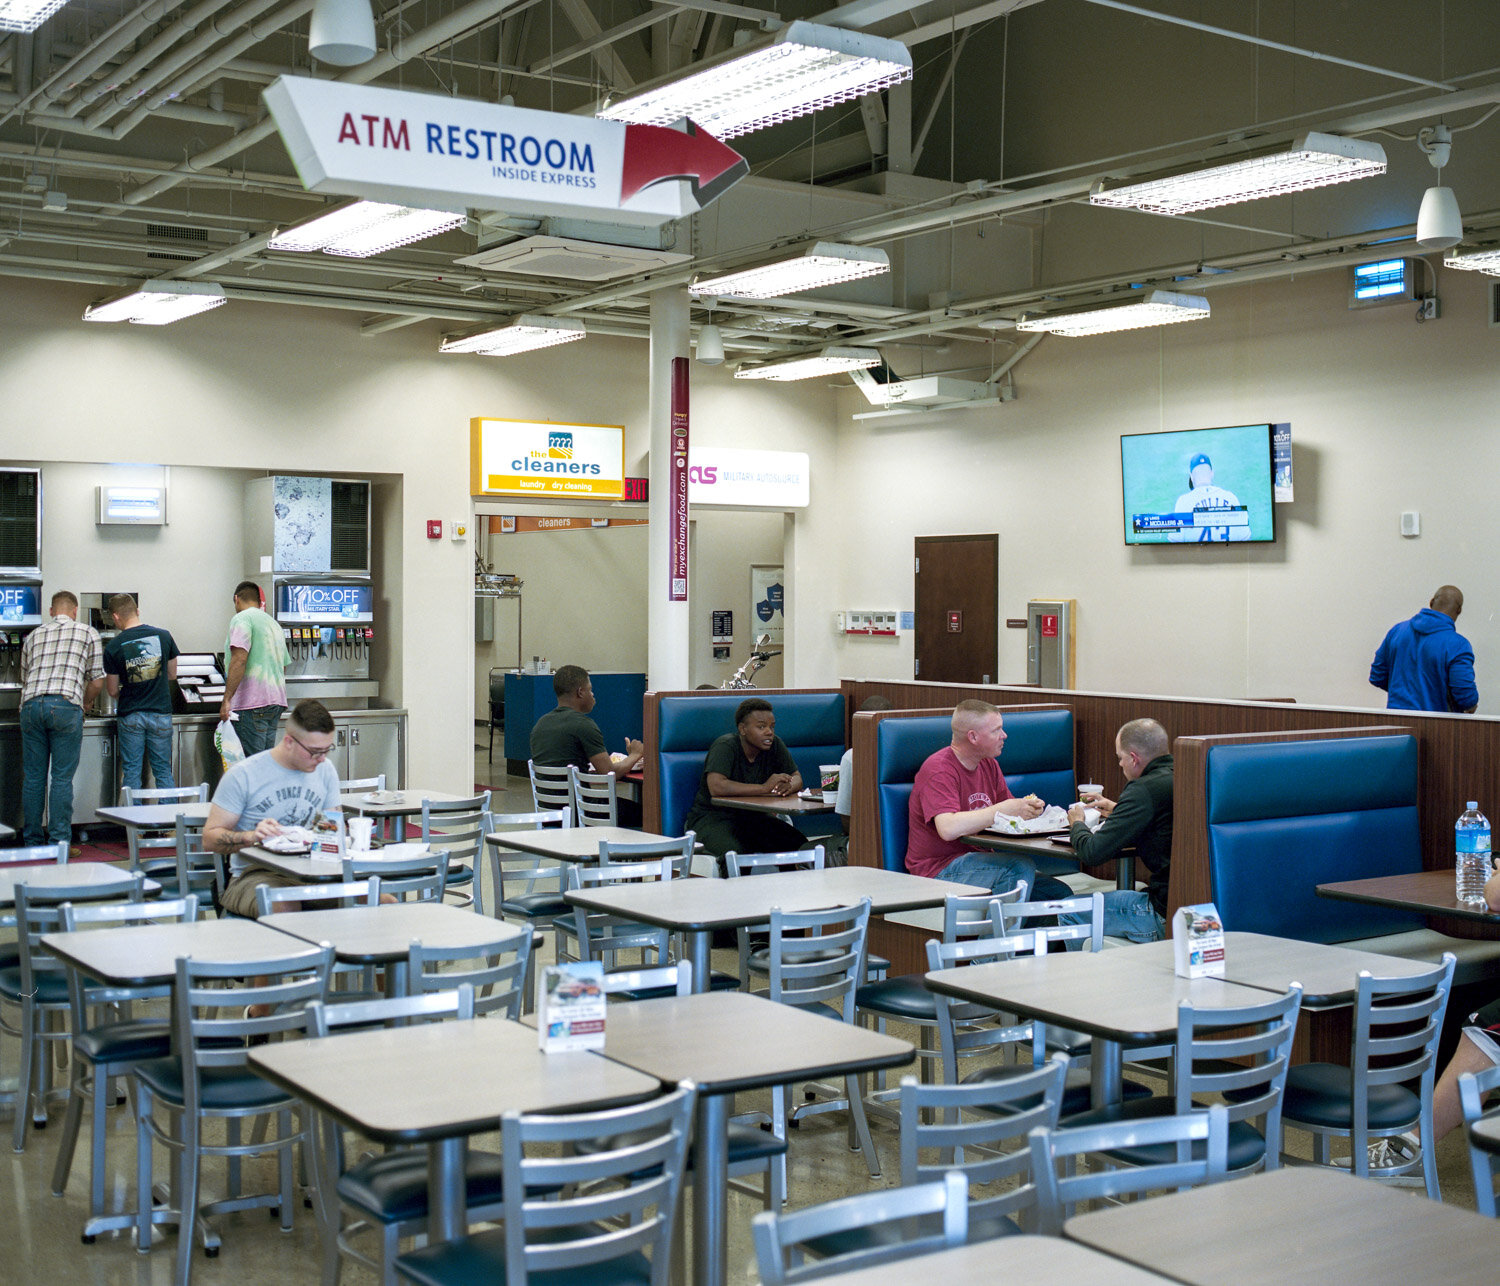 Like in every american city, a fast food inside the Camp Humphrey american military base in South Korea.